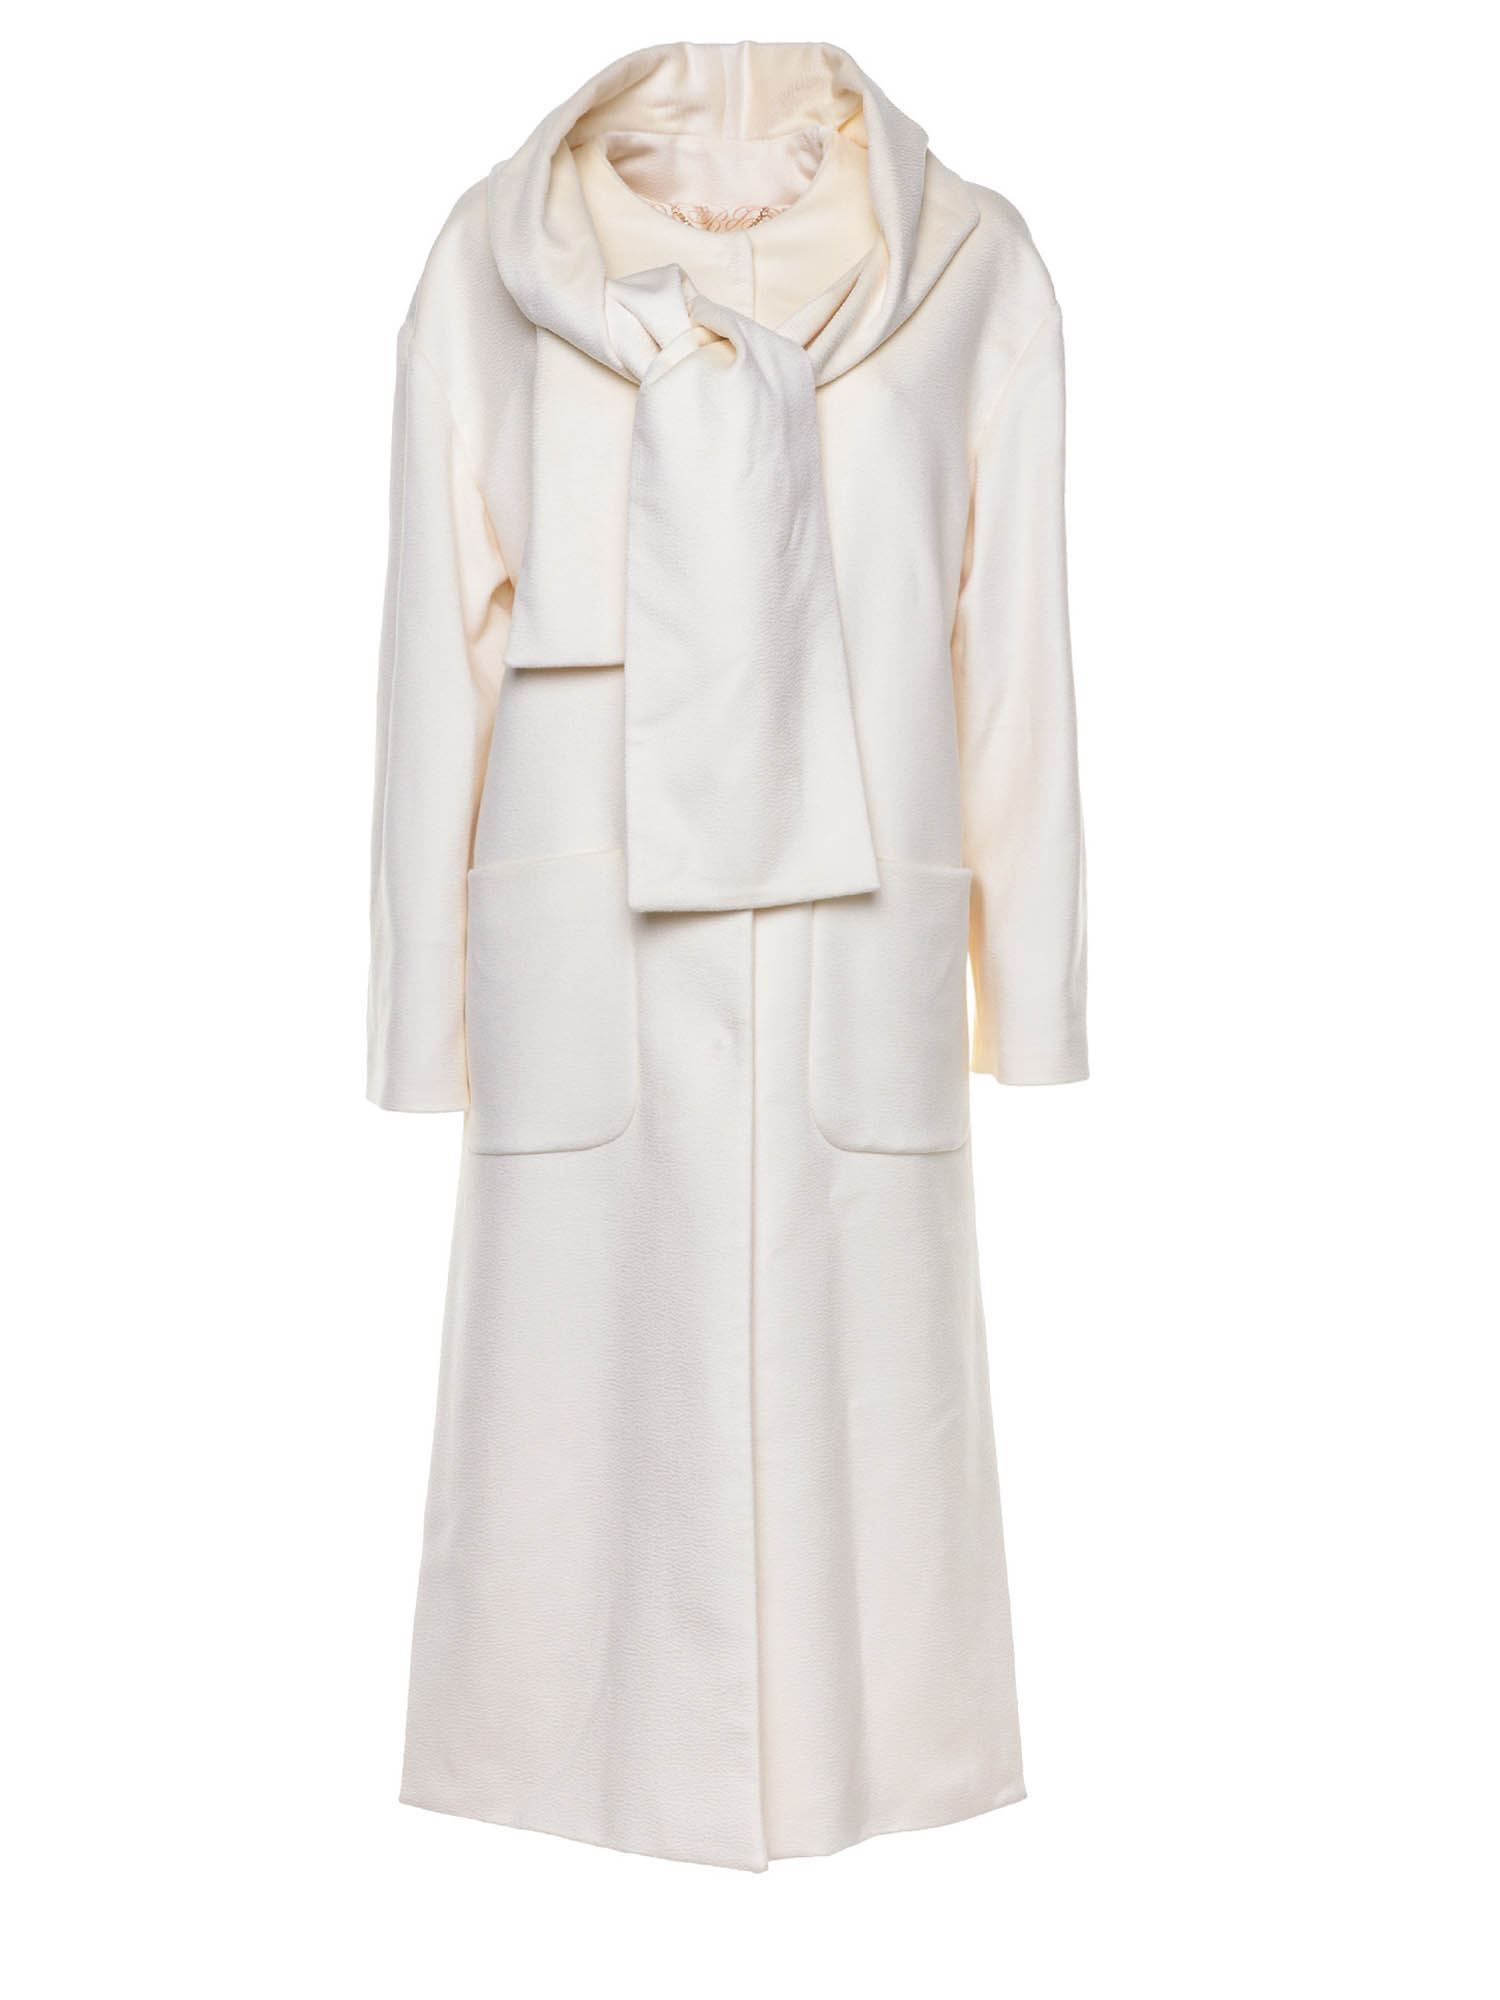 Blumarine SCARF COLLAR COAT IN IVORY COLOR